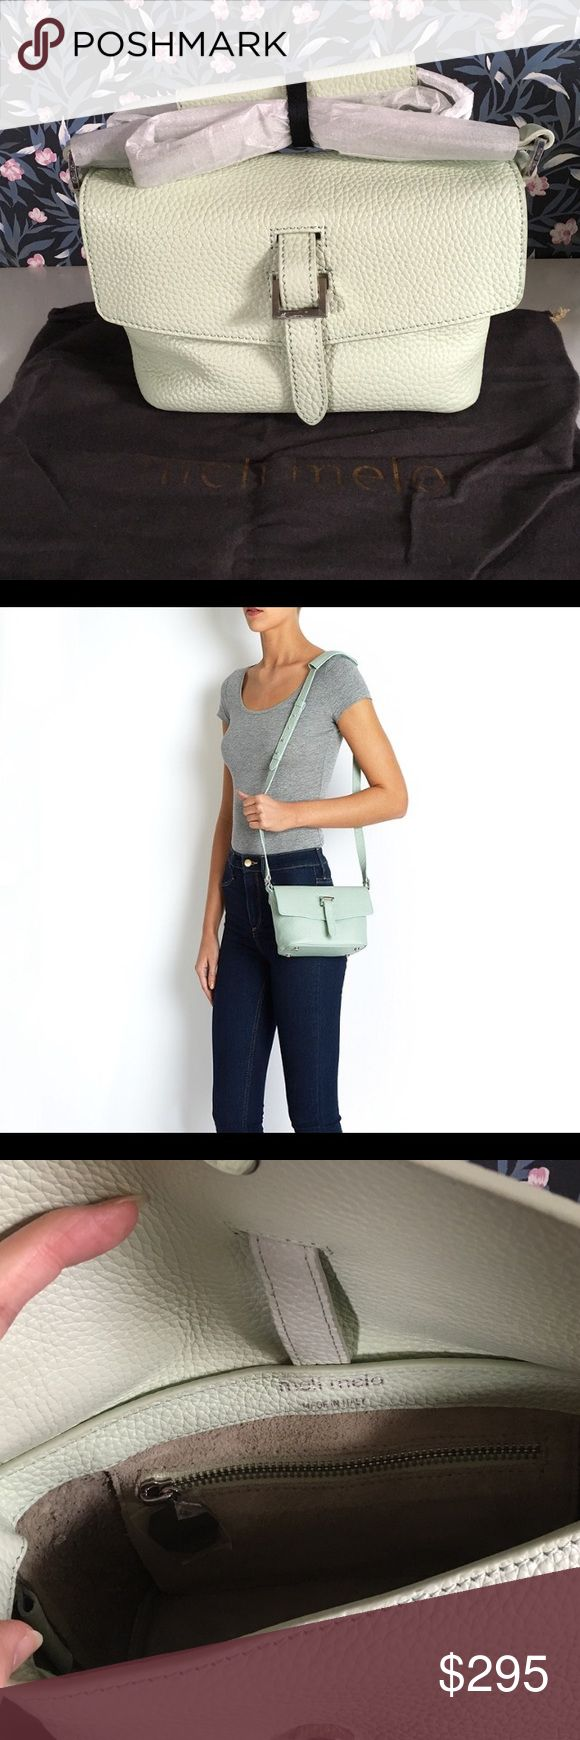 NWOT Meli Melo Maisie Micro crossbody bag Brandnew without tag, comes with dust bag. Color is cactus green. Retail $395+tax Meli Melo Bags Crossbody Bags